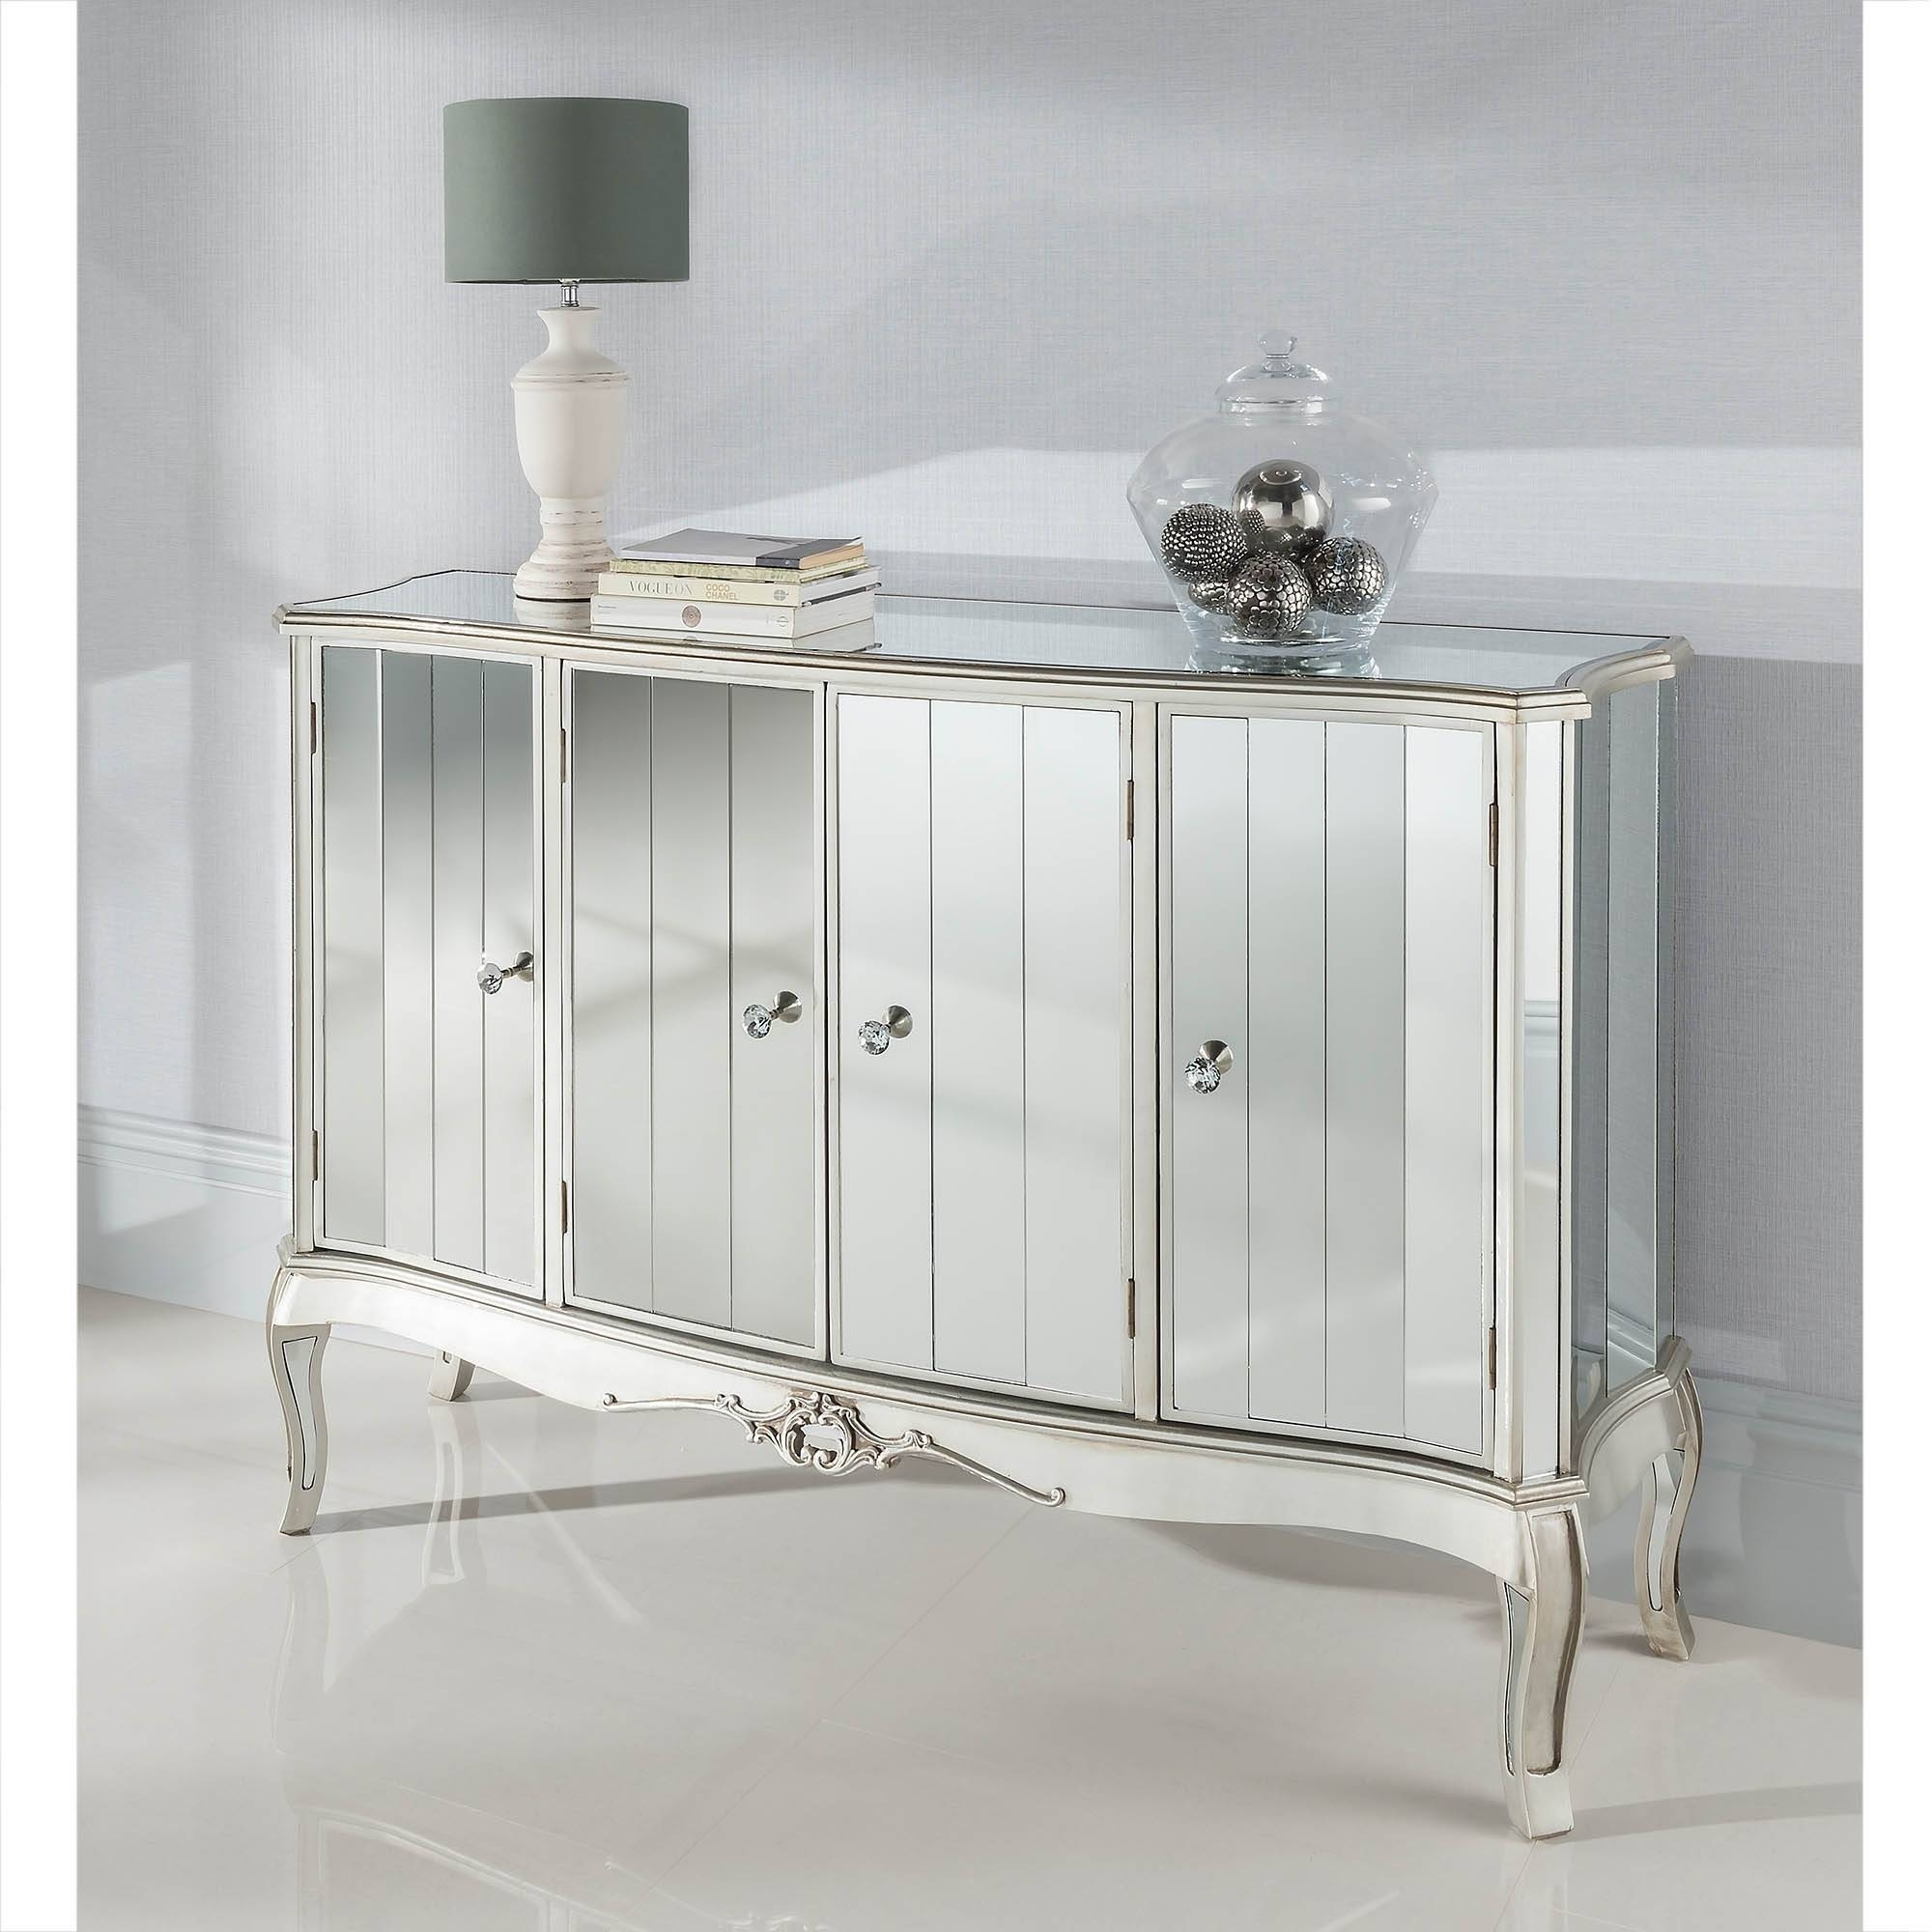 drawer furniture luxury cabinet design chest mirror reflect the for your cupboard furnishings dresser full drawers size to mirrored of white with trim and a bedroom stands interior basin style gold bathroom